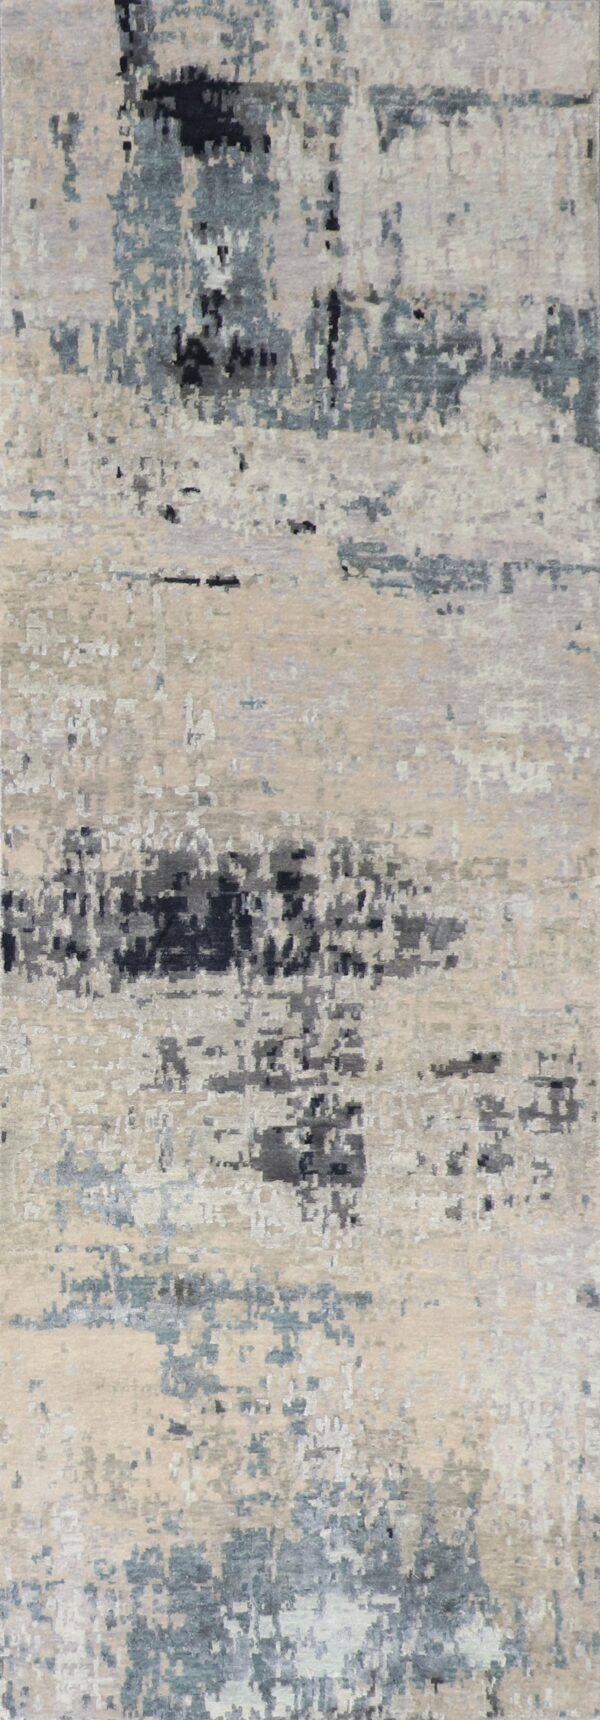 """4'x11'10"""" Contemporary Tan&Gray & Blue Wool & Silk Hand-Knotted Rug - Direct Rug Import   Rugs in Chicago, Indiana,South Bend,Granger"""